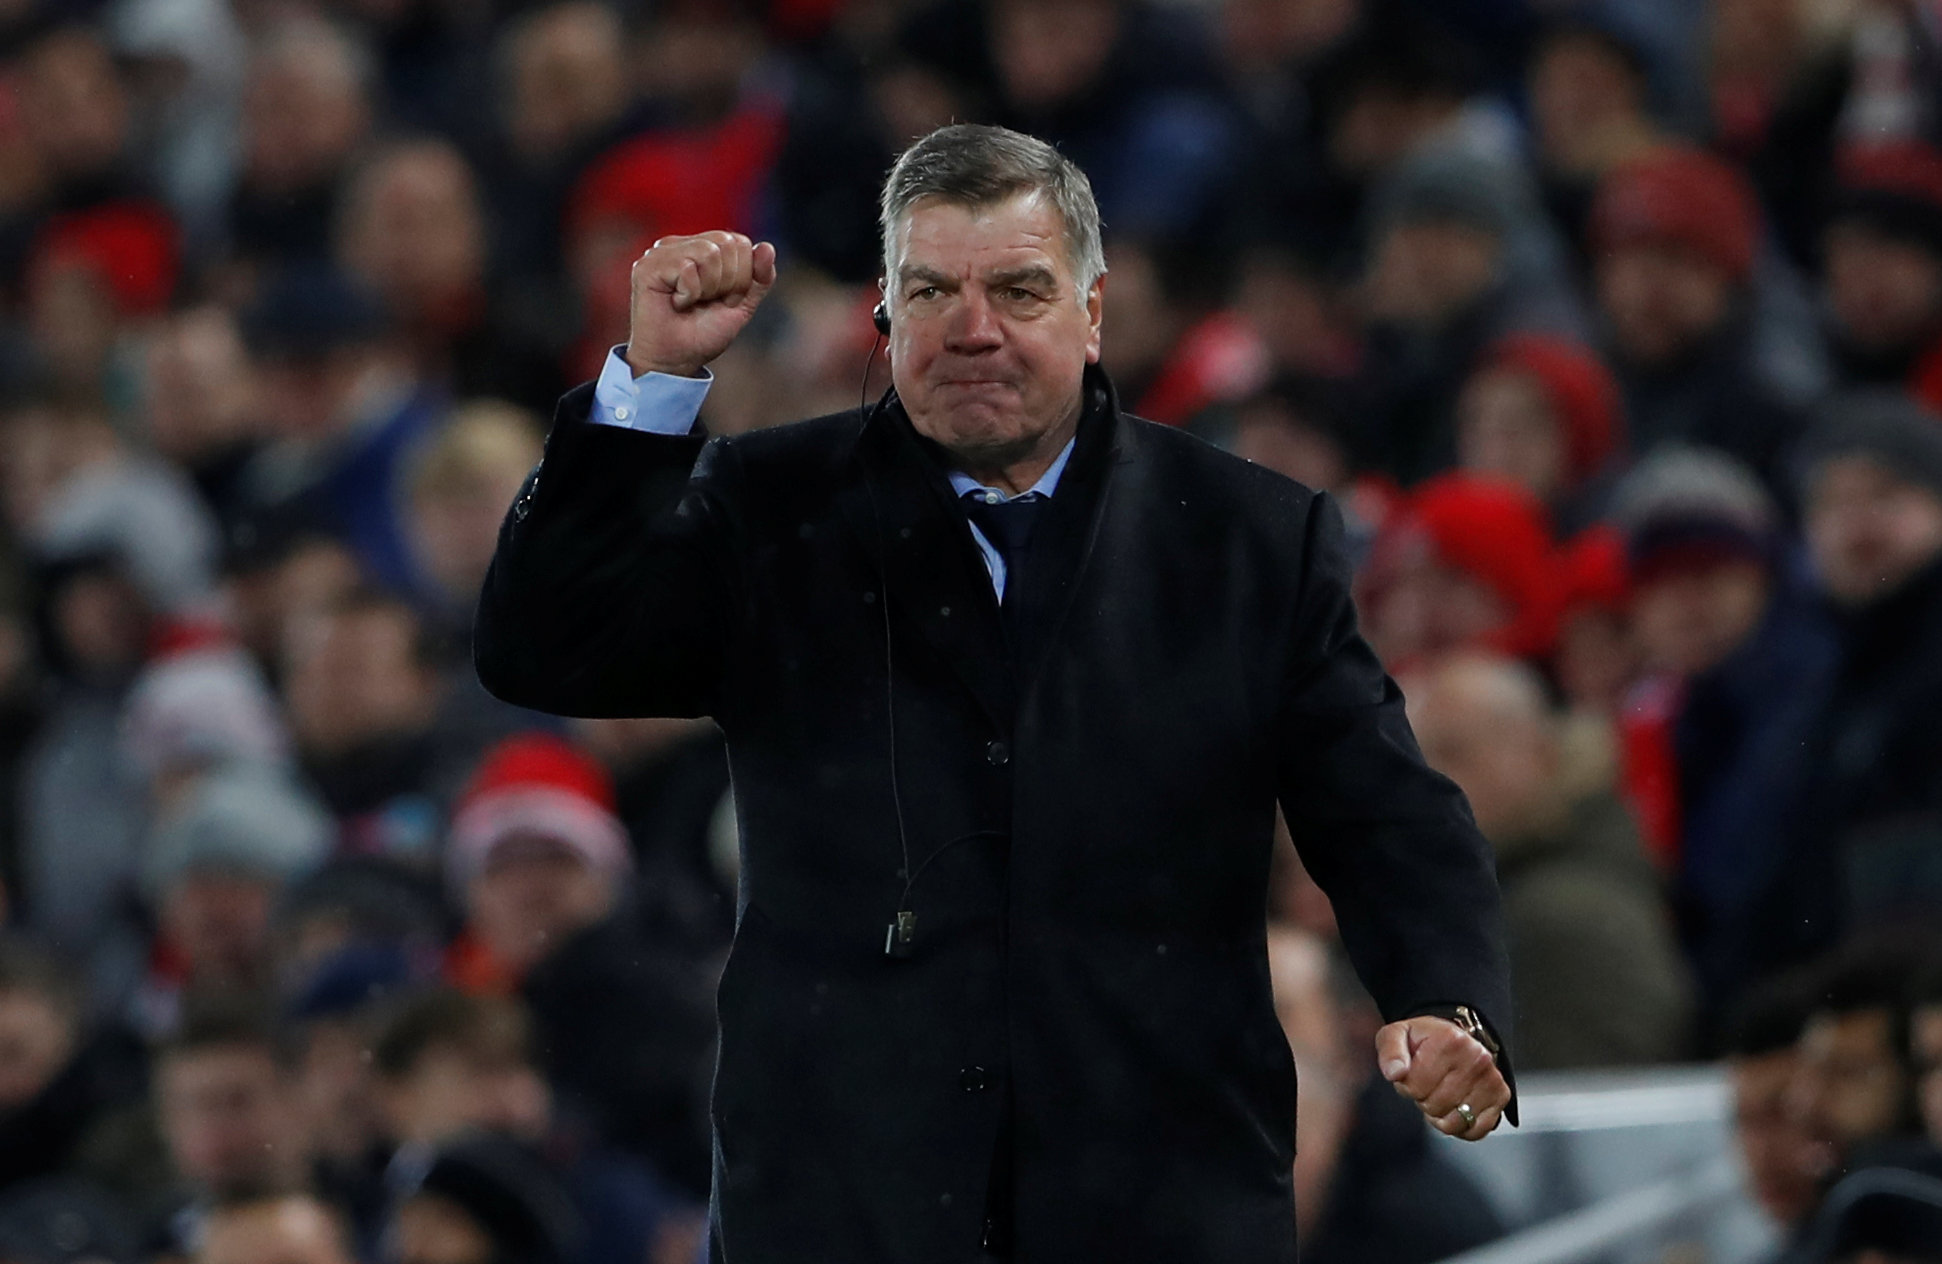 Football: Allardyce to review Everton players before January